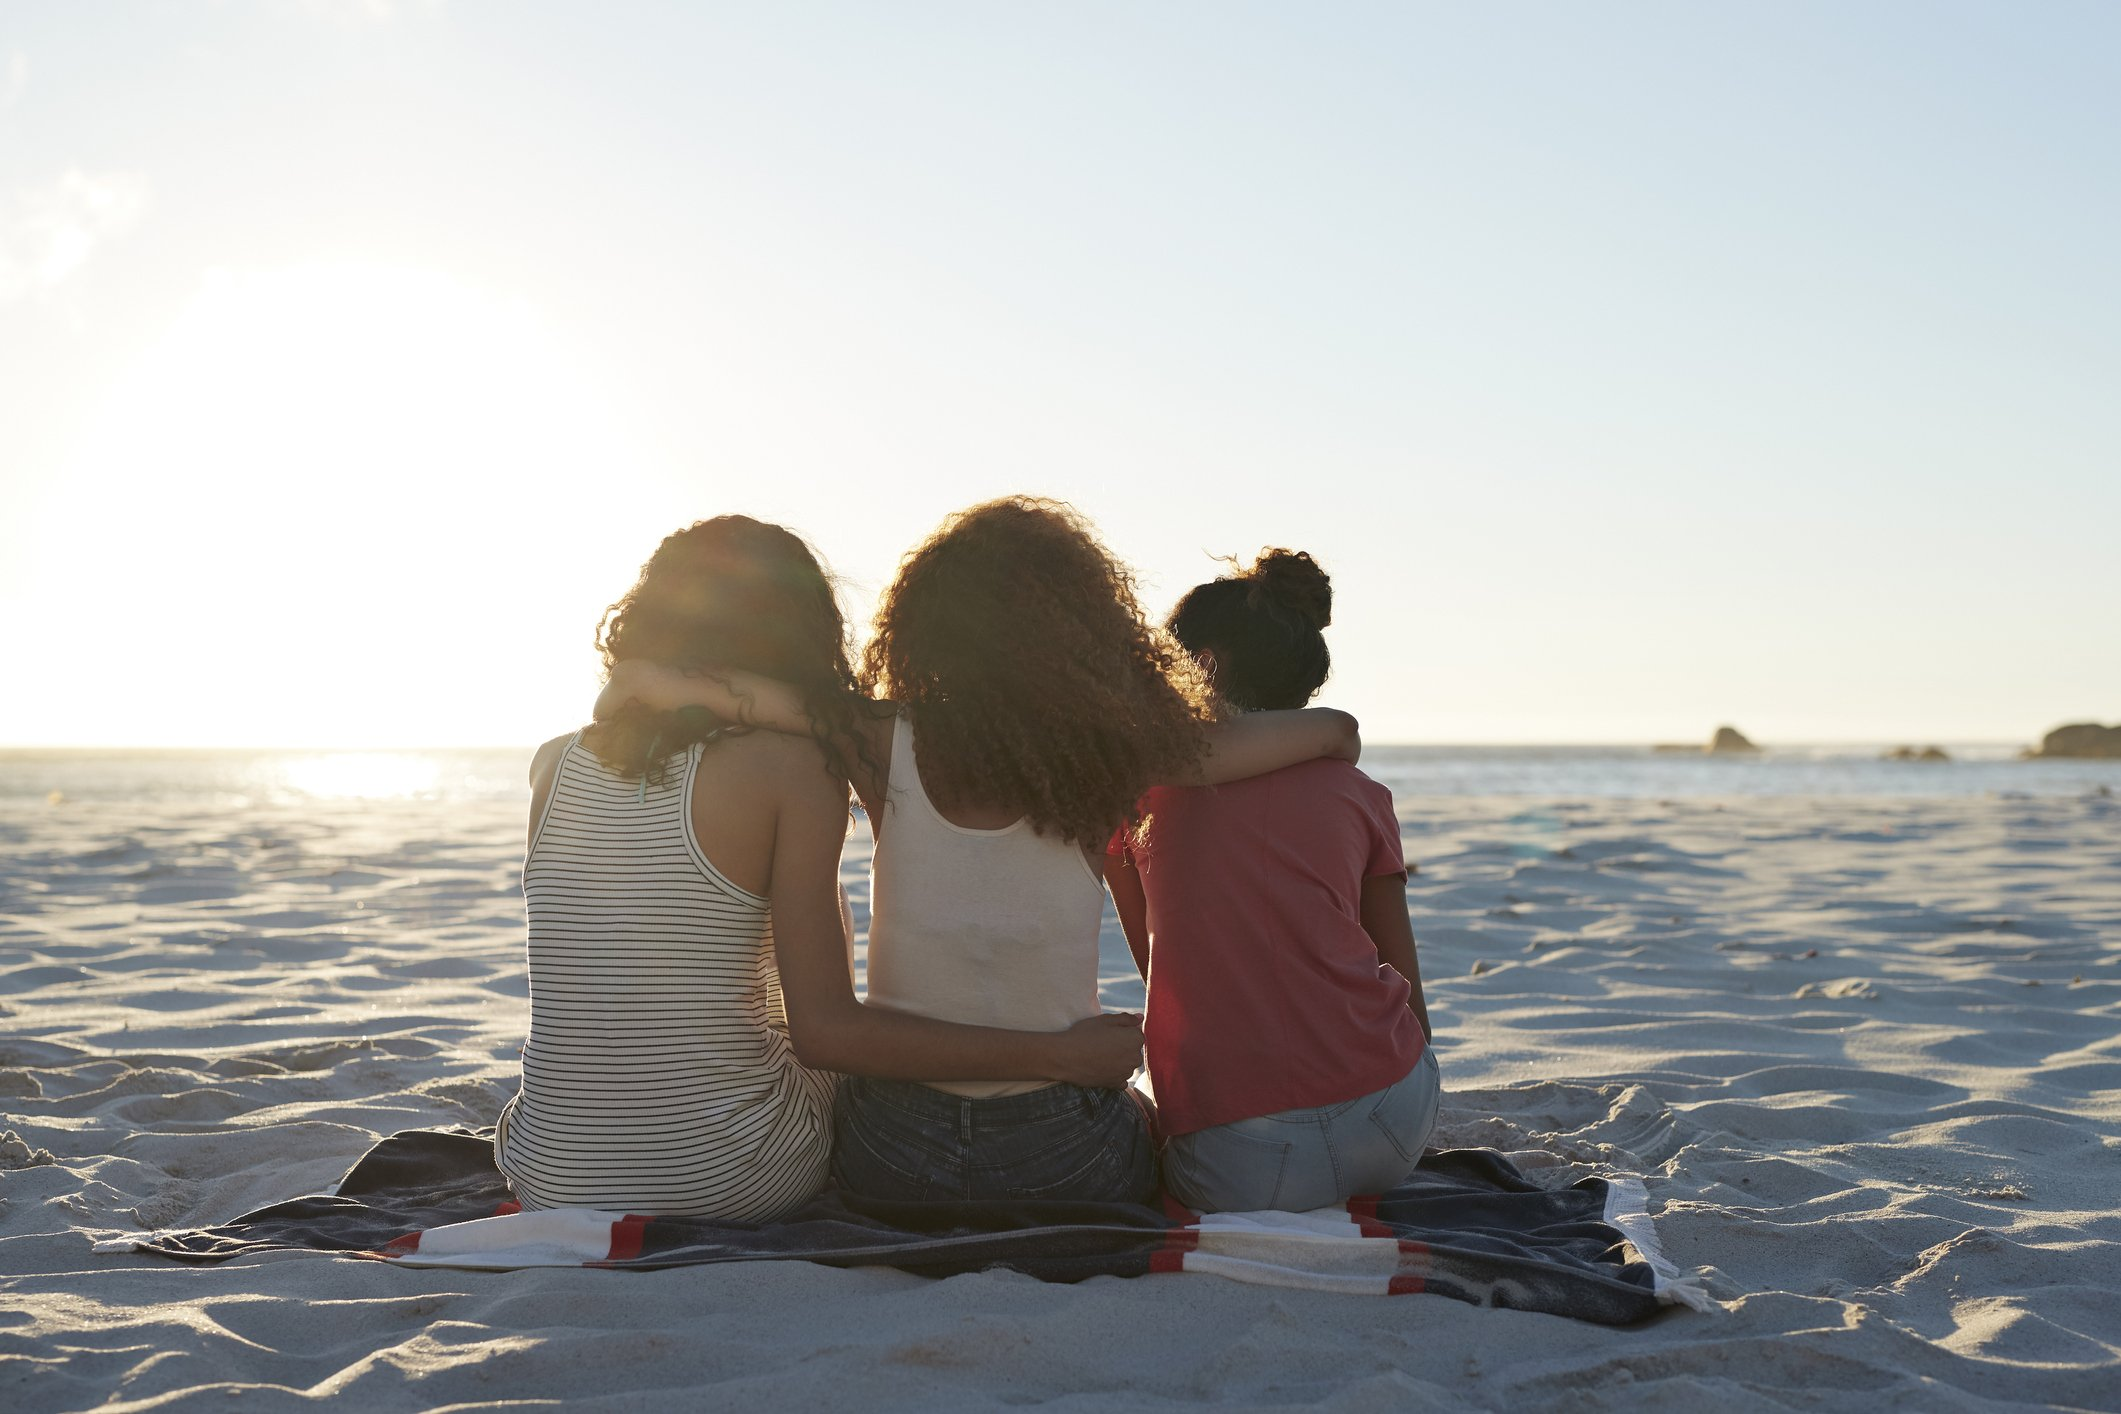 Rear view of three young women sitting on the beach. | Photo: Getty Images